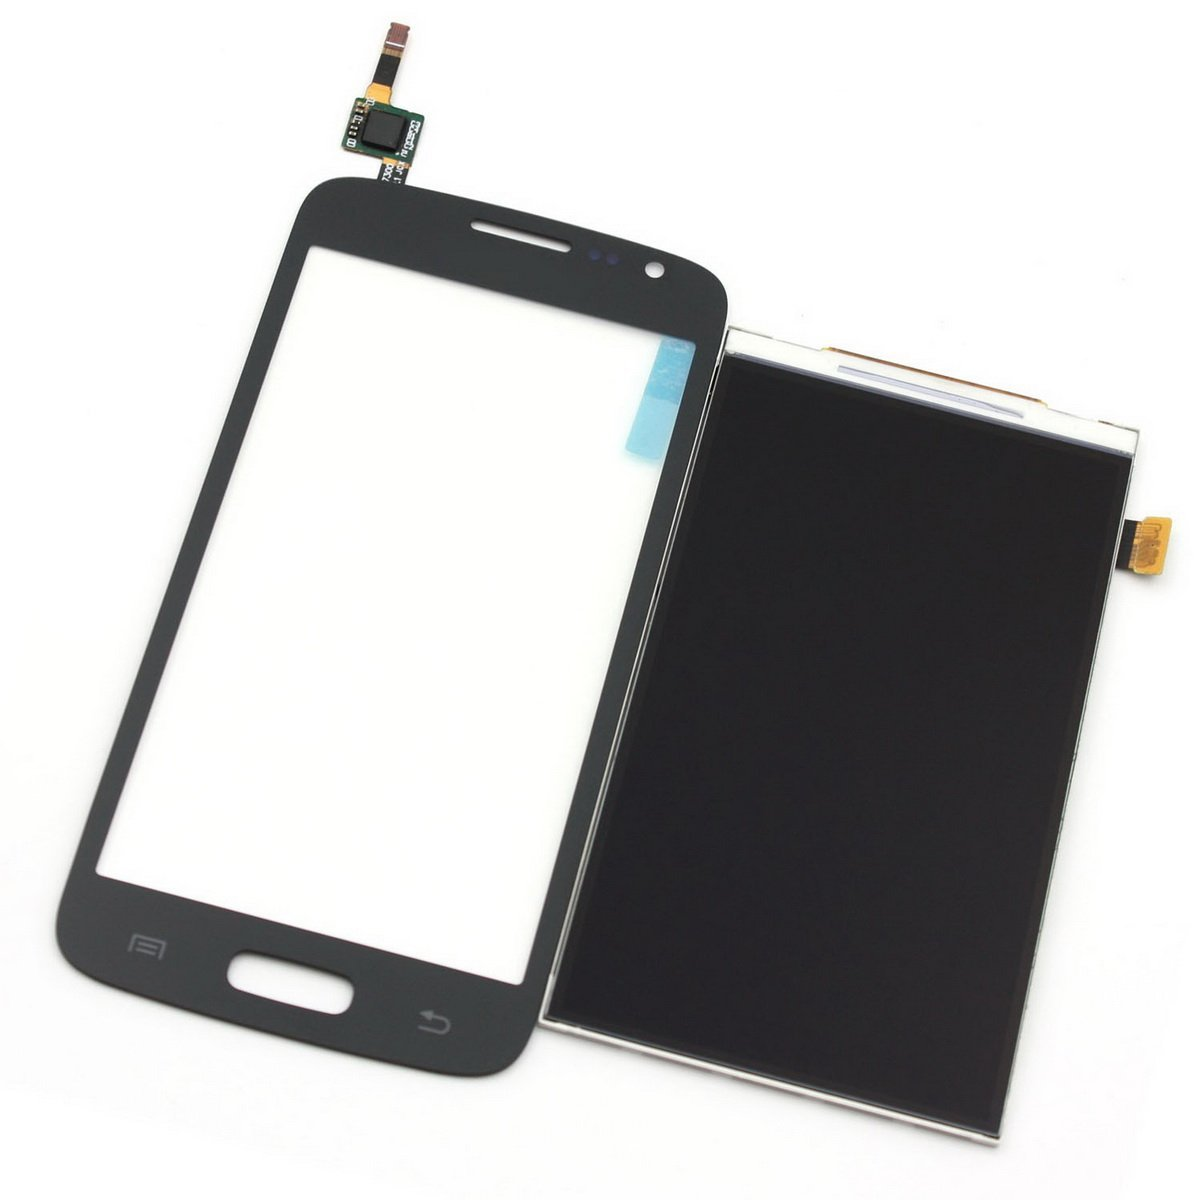 Cell Phones Parts From USA New Black Full Assembly Cobom LCD Display Touch Screen Digitizer Complete for Samsung Galaxy Avant SM-G386 G386TR Metro PCS G386T T-mobile G386T1 Core G386F G386W (Black)